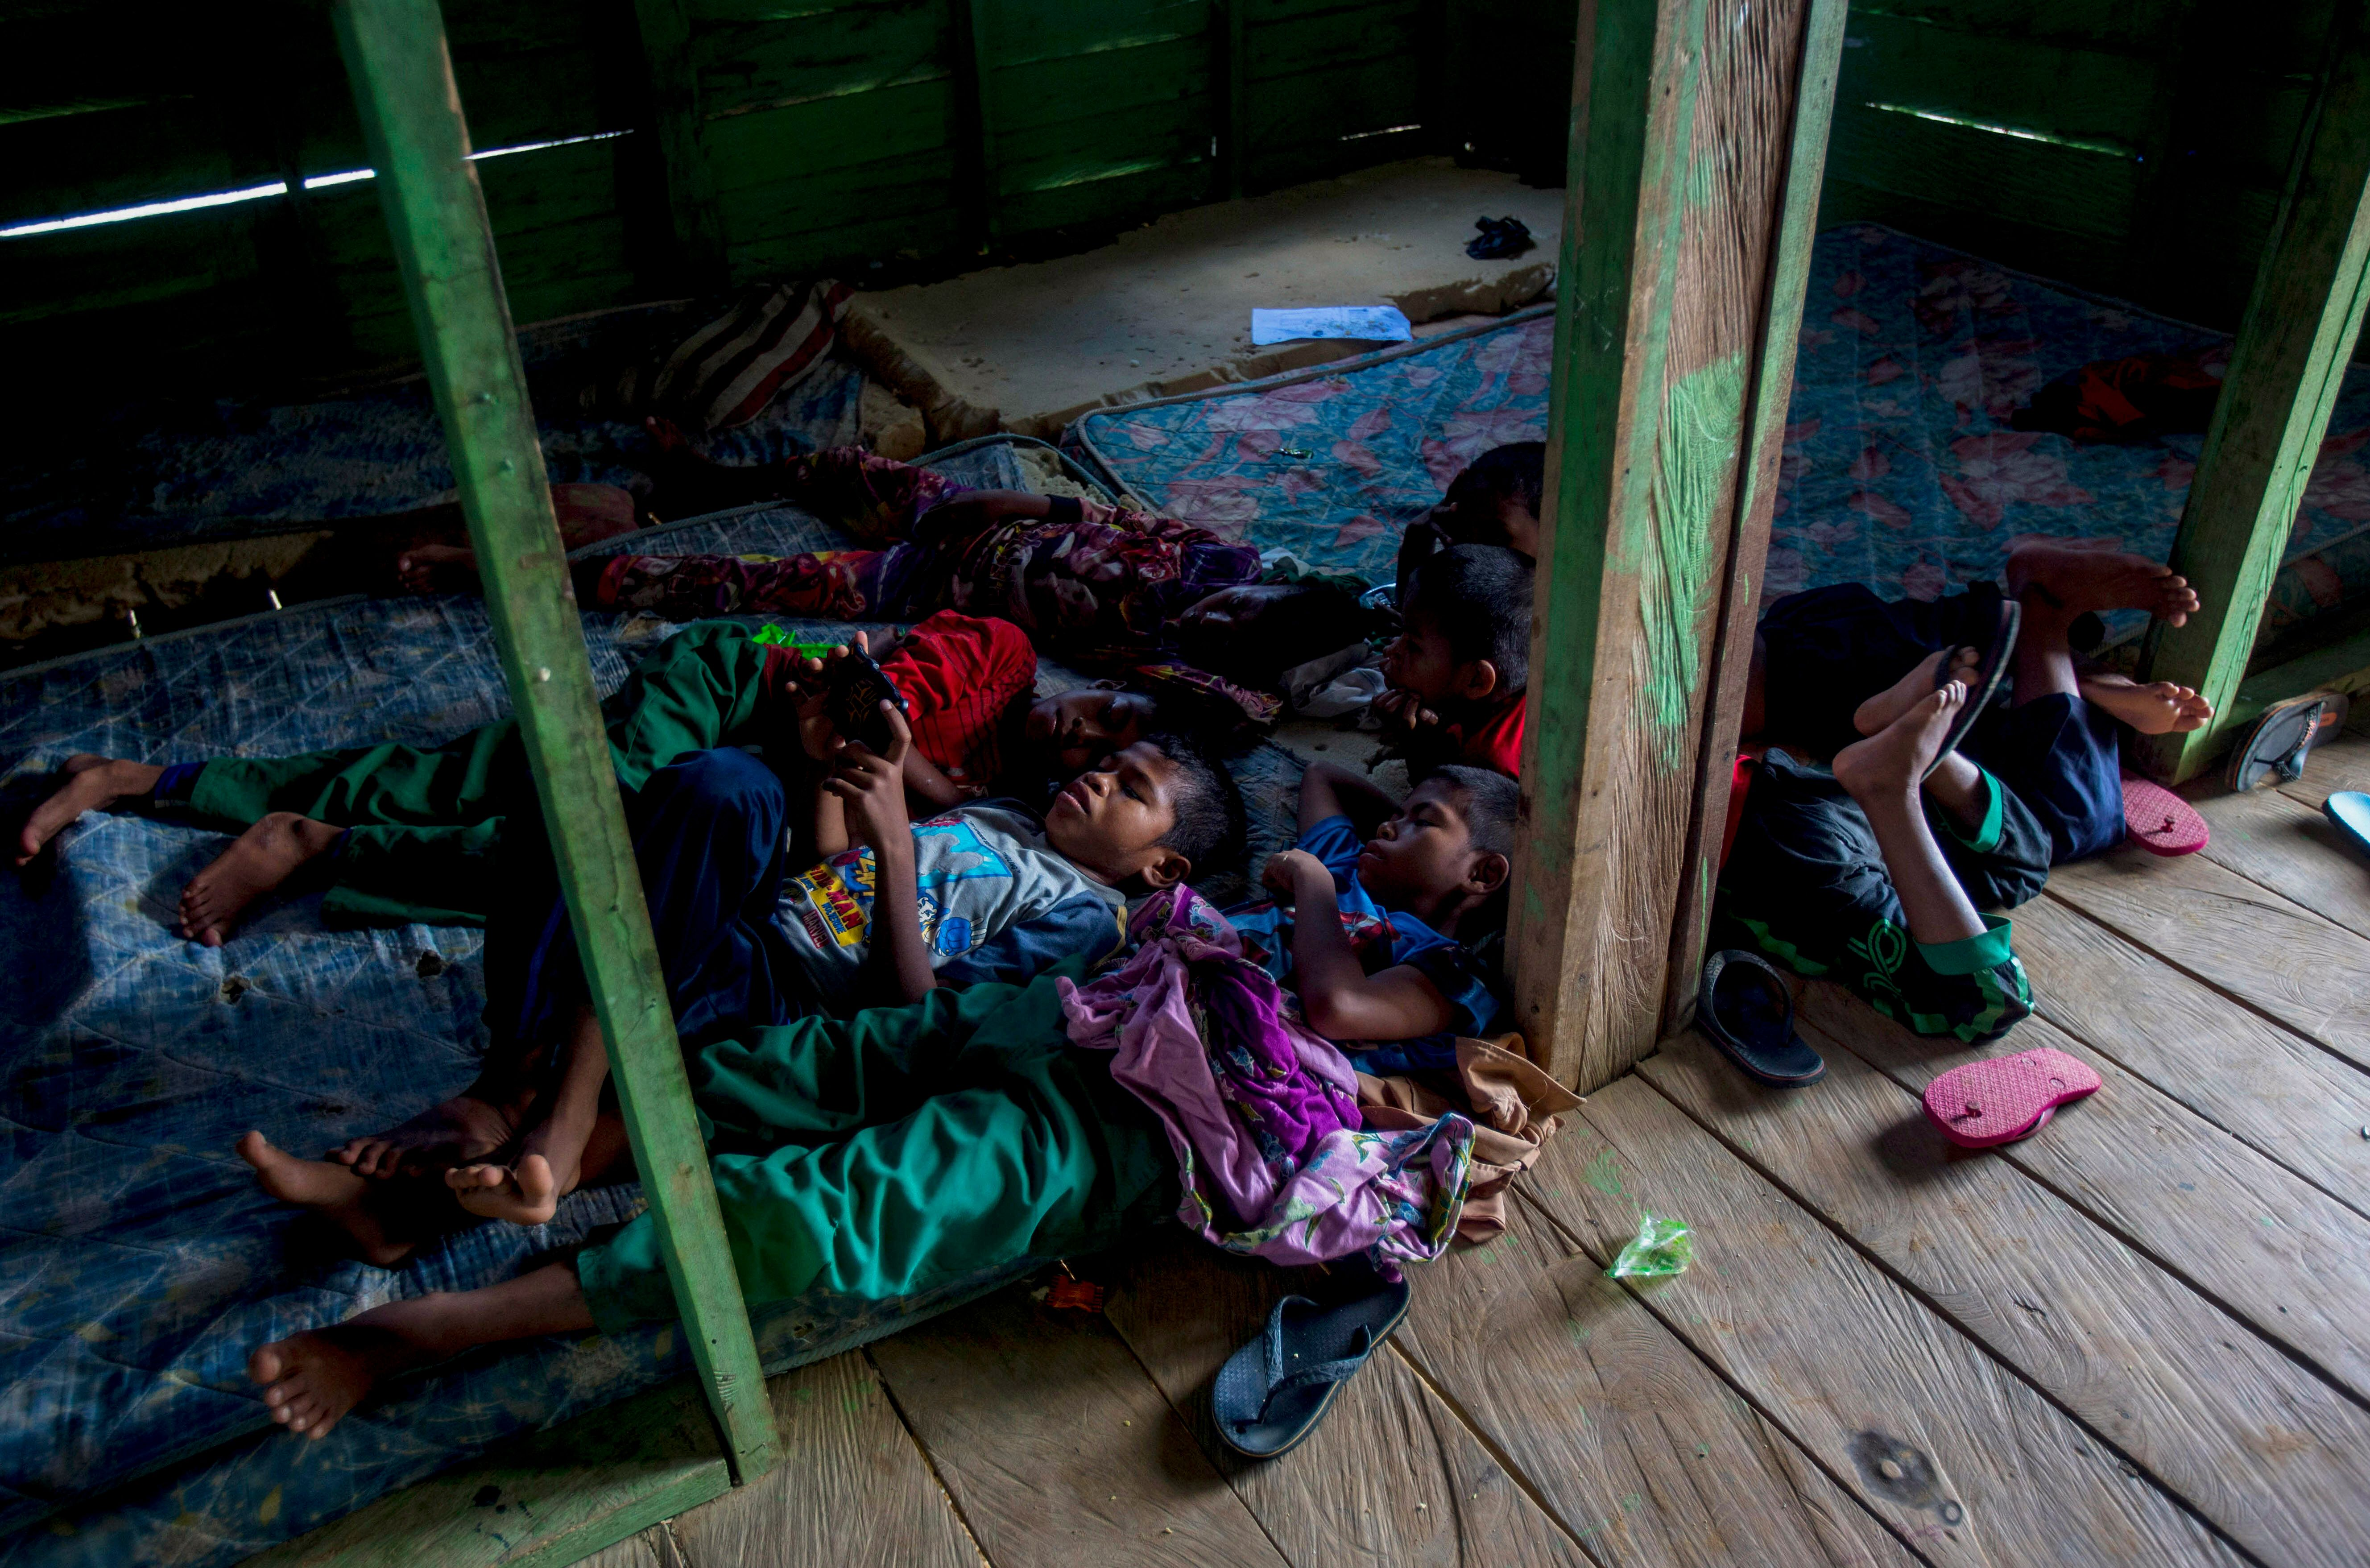 Students of a boarding school rest in their dormitory in North Kalimantan, Indonesia. Some palm oil workers who work illegall